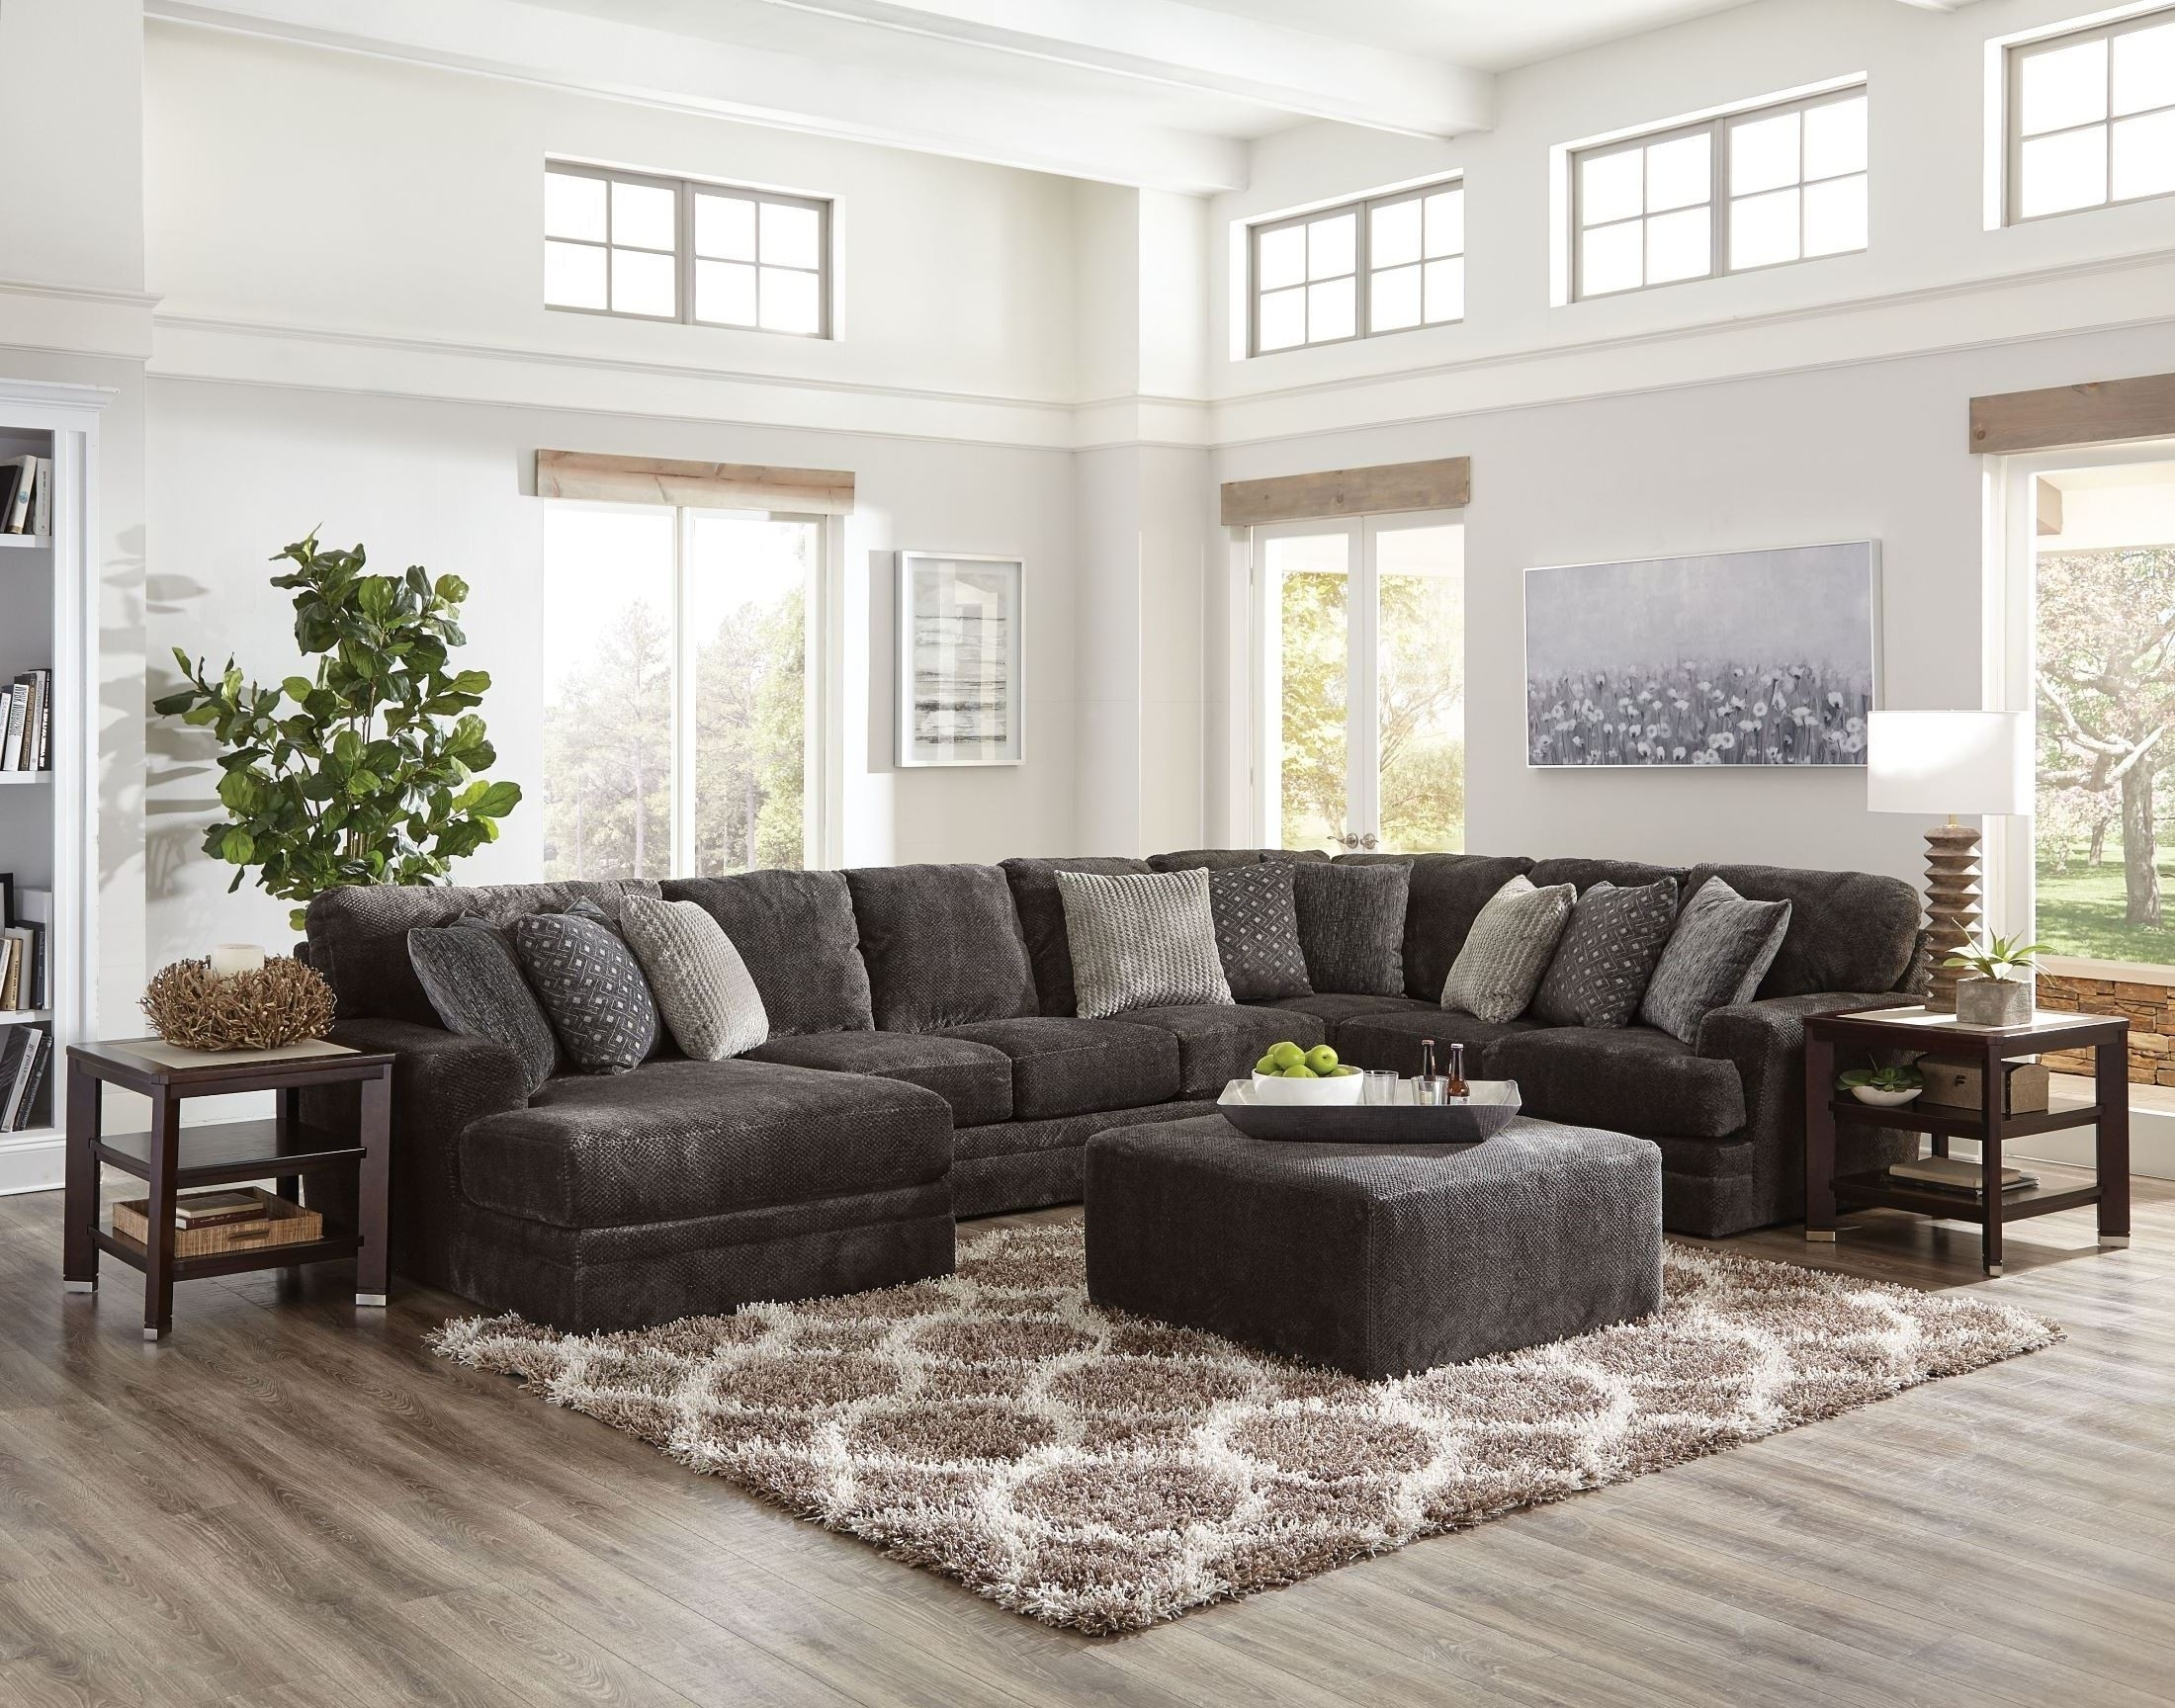 Mammoth Smoke Laf Chaise Sectional From Jackson | Coleman Furniture Inside Avery 2 Piece Sectionals With Raf Armless Chaise (Image 19 of 25)